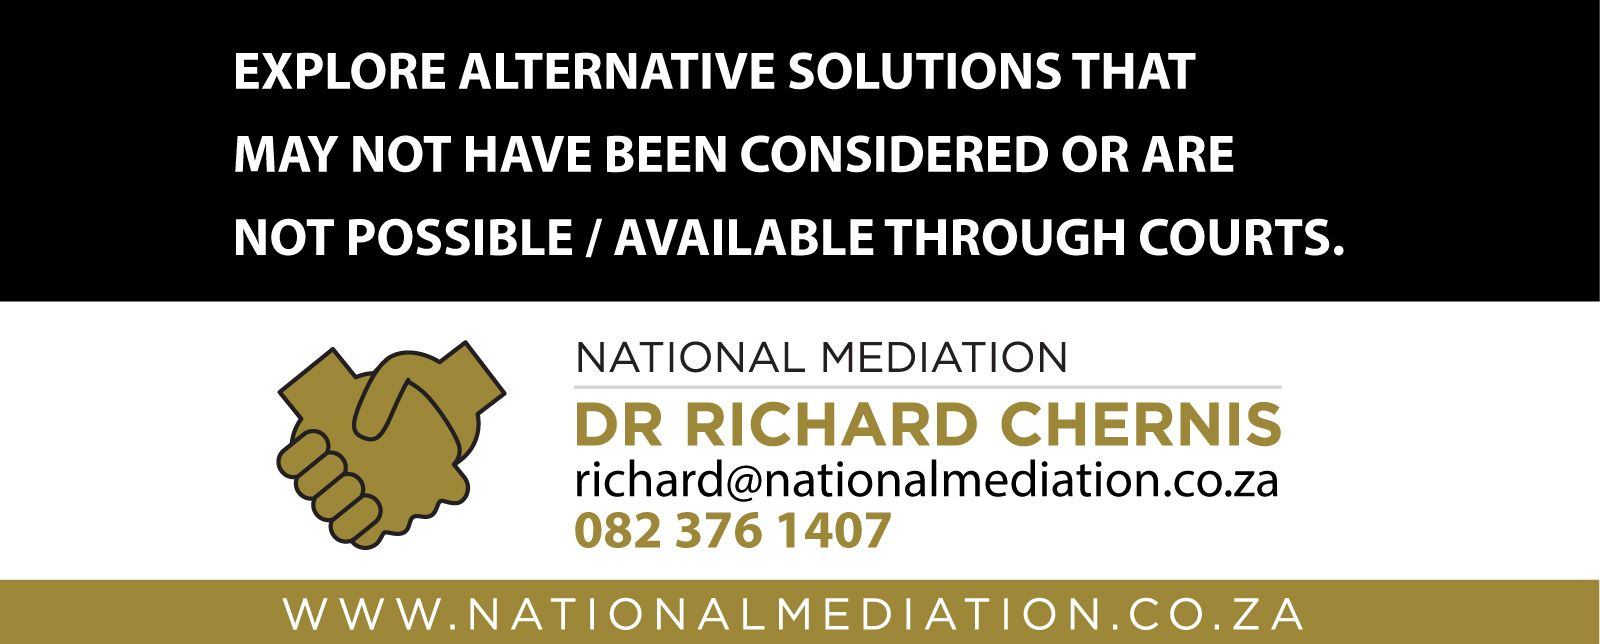 The main advantages of attempting to reach agreement by mediation - http://socialmediamachine.co.za/nationalmediation/index.php/2015/09/11/the-main-advantages-of-attempting-to-reach-agreement-by-mediation-7/